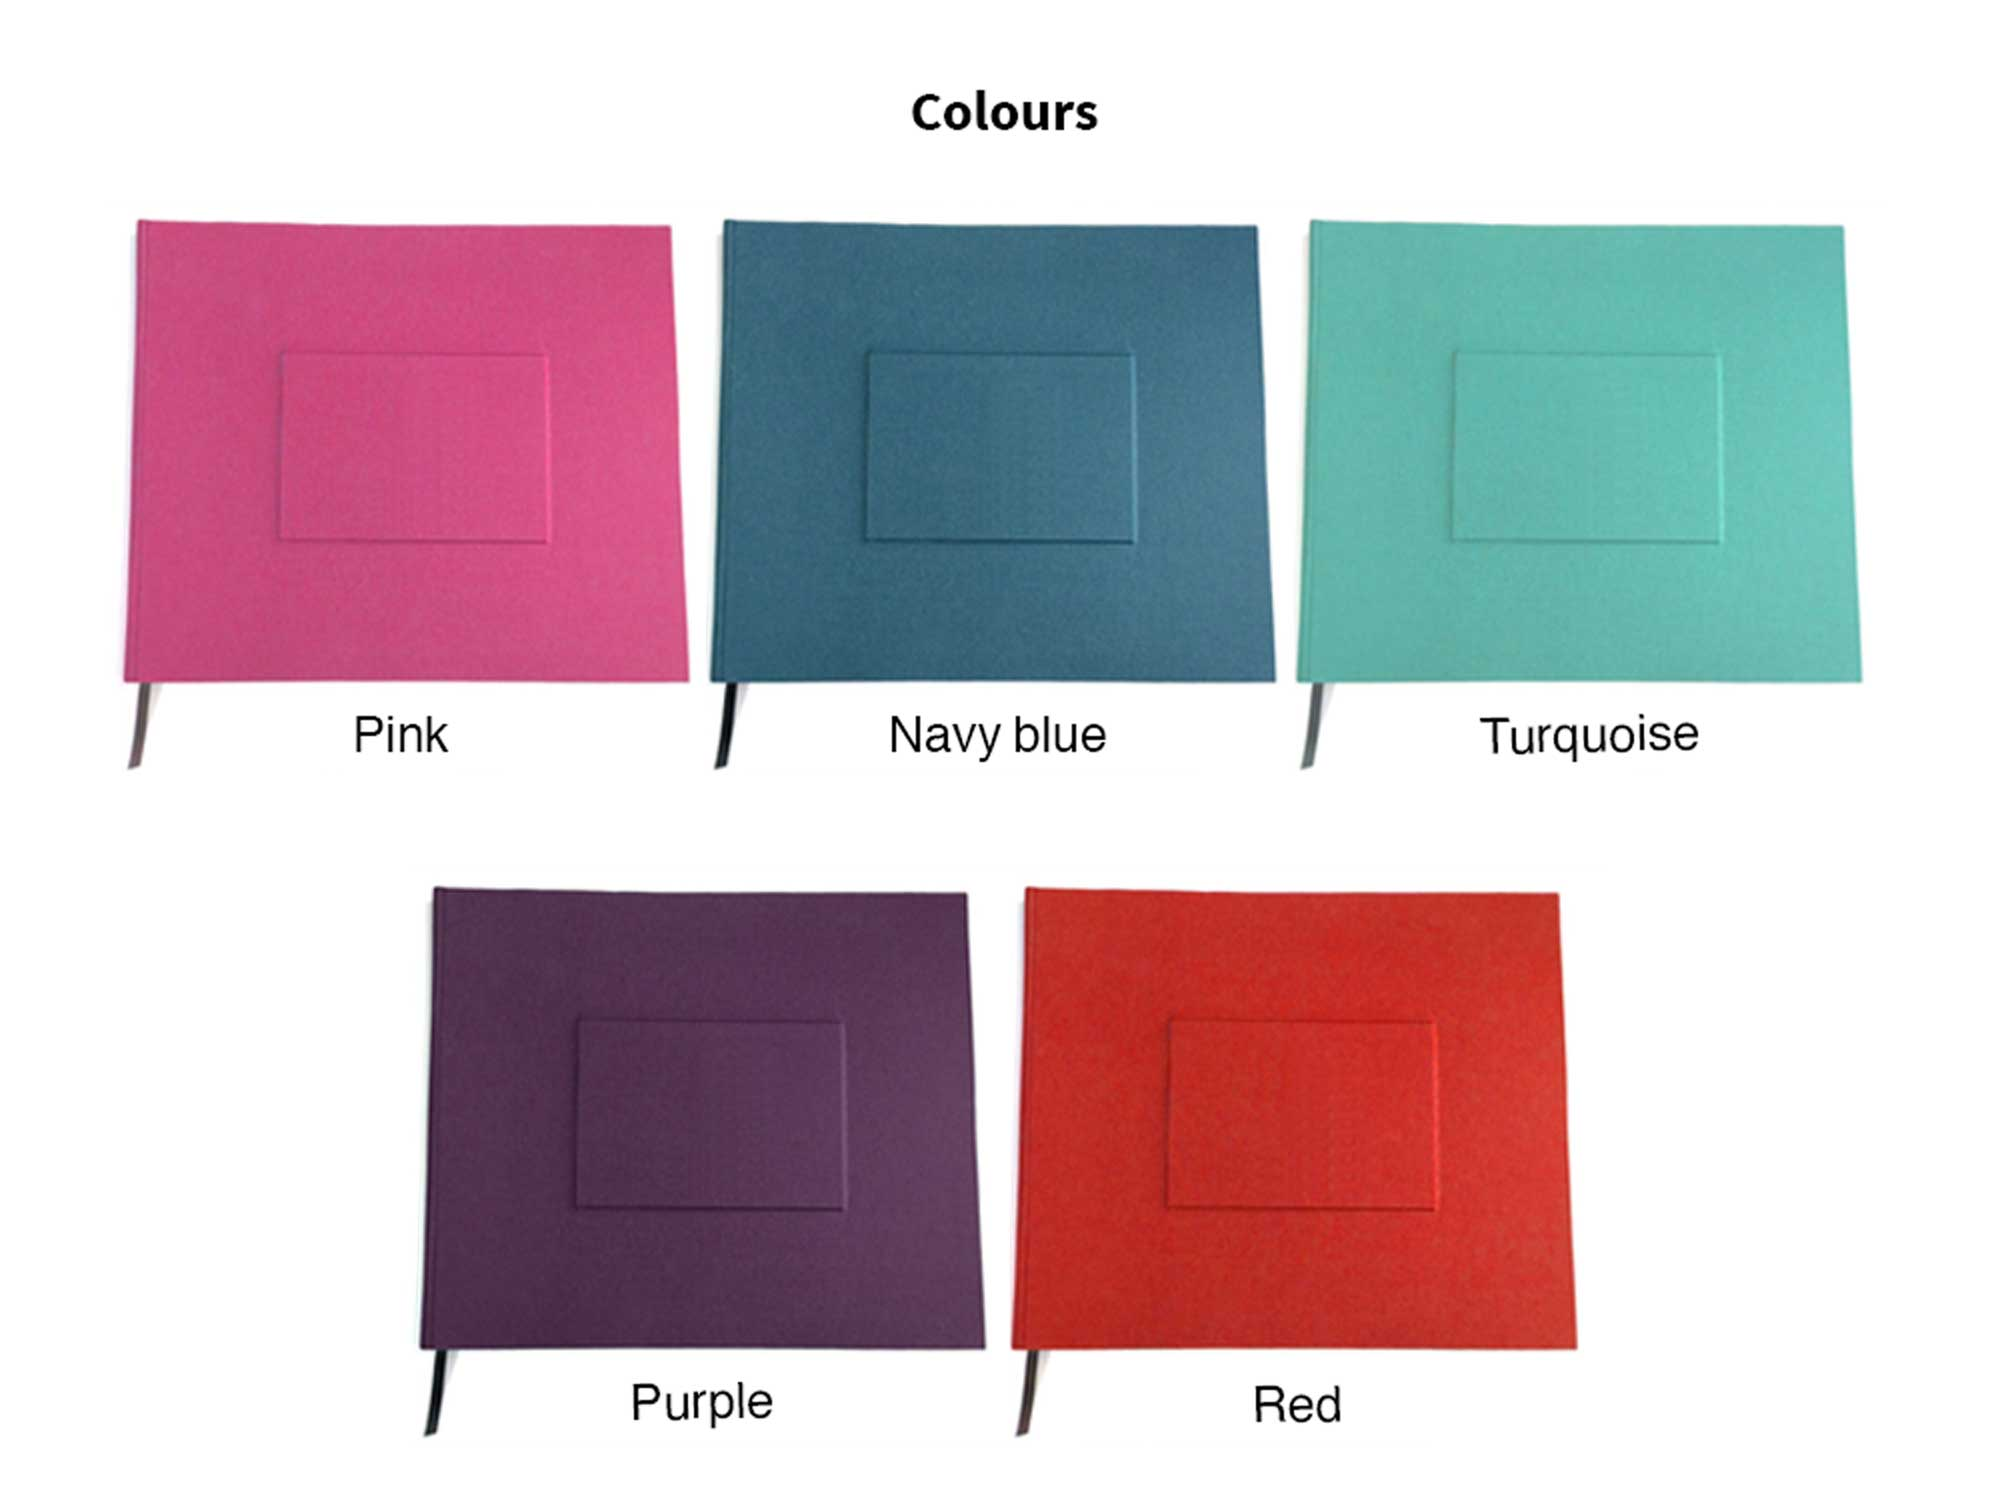 personalised wedding guest book from Bookshell bindery available in grey, pink, navy blue, turquoise, burgundy, purple, red book cloth